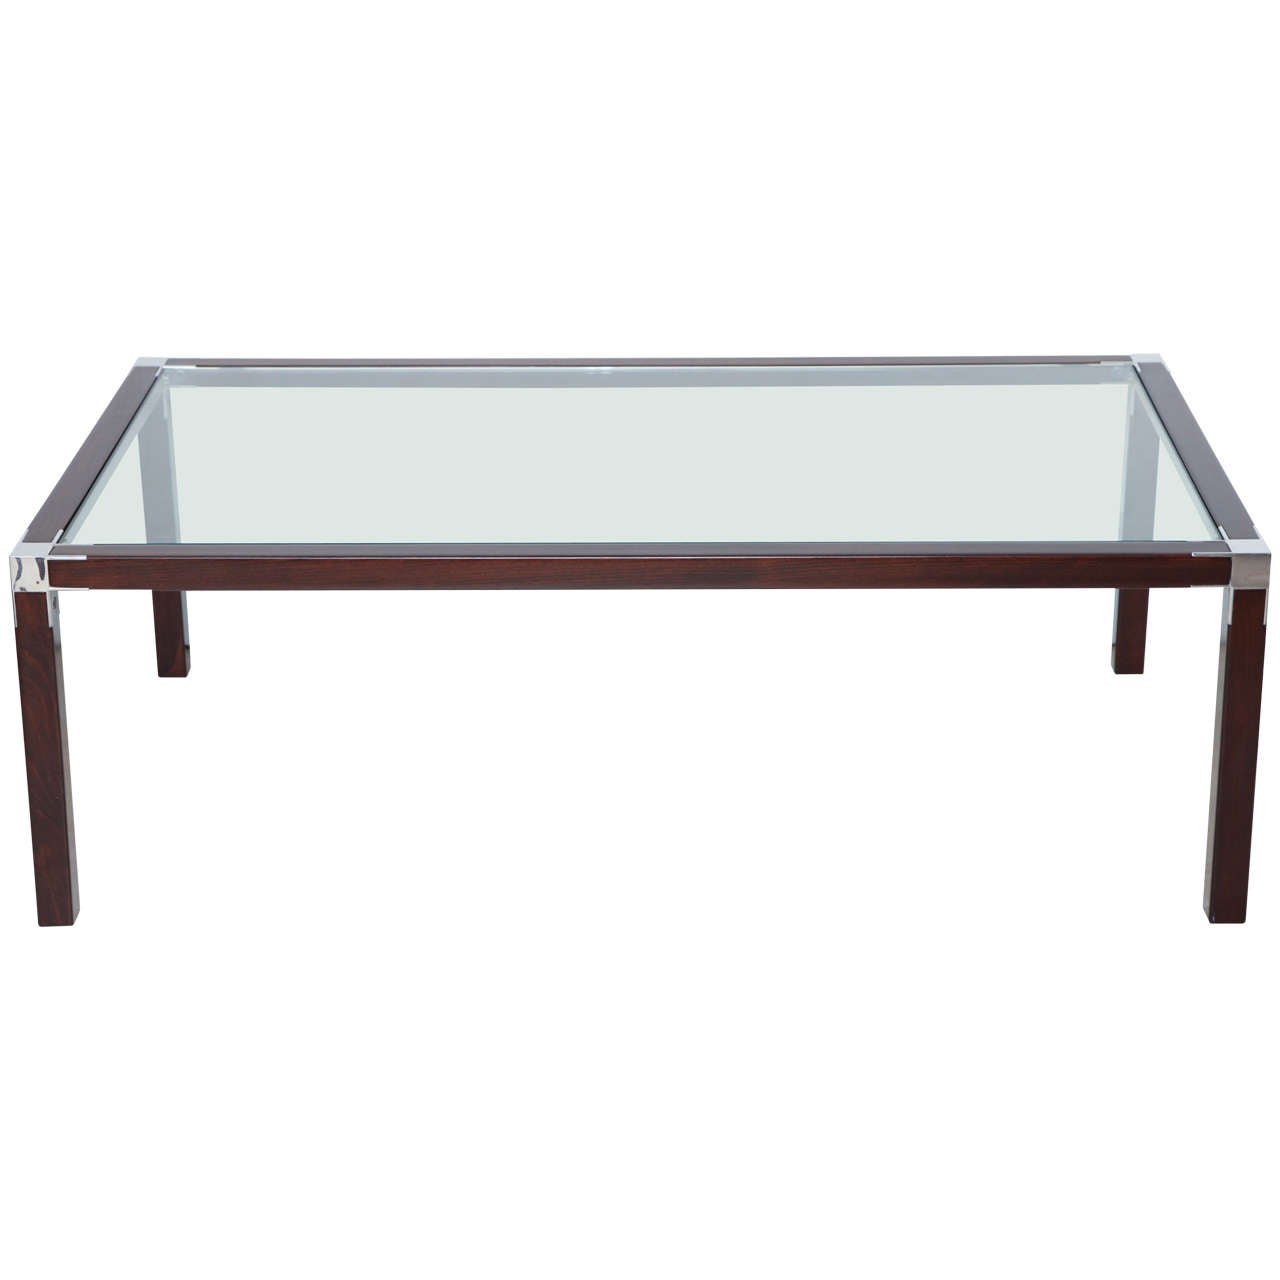 Mid Century Modern Beech Wood And Nickel Coffee Table With Smoked Glass Top At 1stdibs